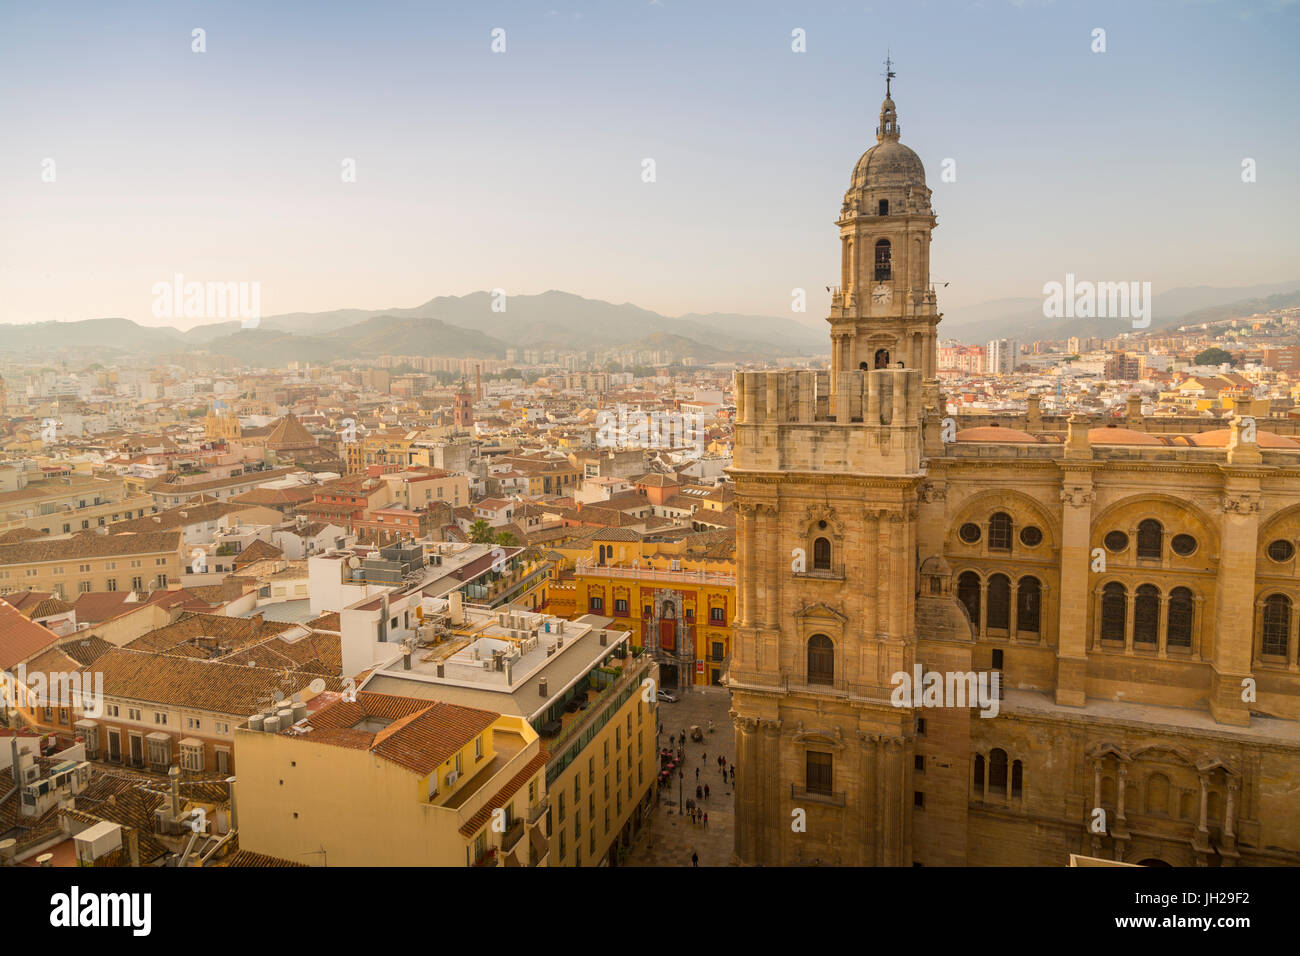 Elevated view of Malaga Cathedral, Malaga, Costa del Sol, Andalusia, Spain, Europe - Stock Image